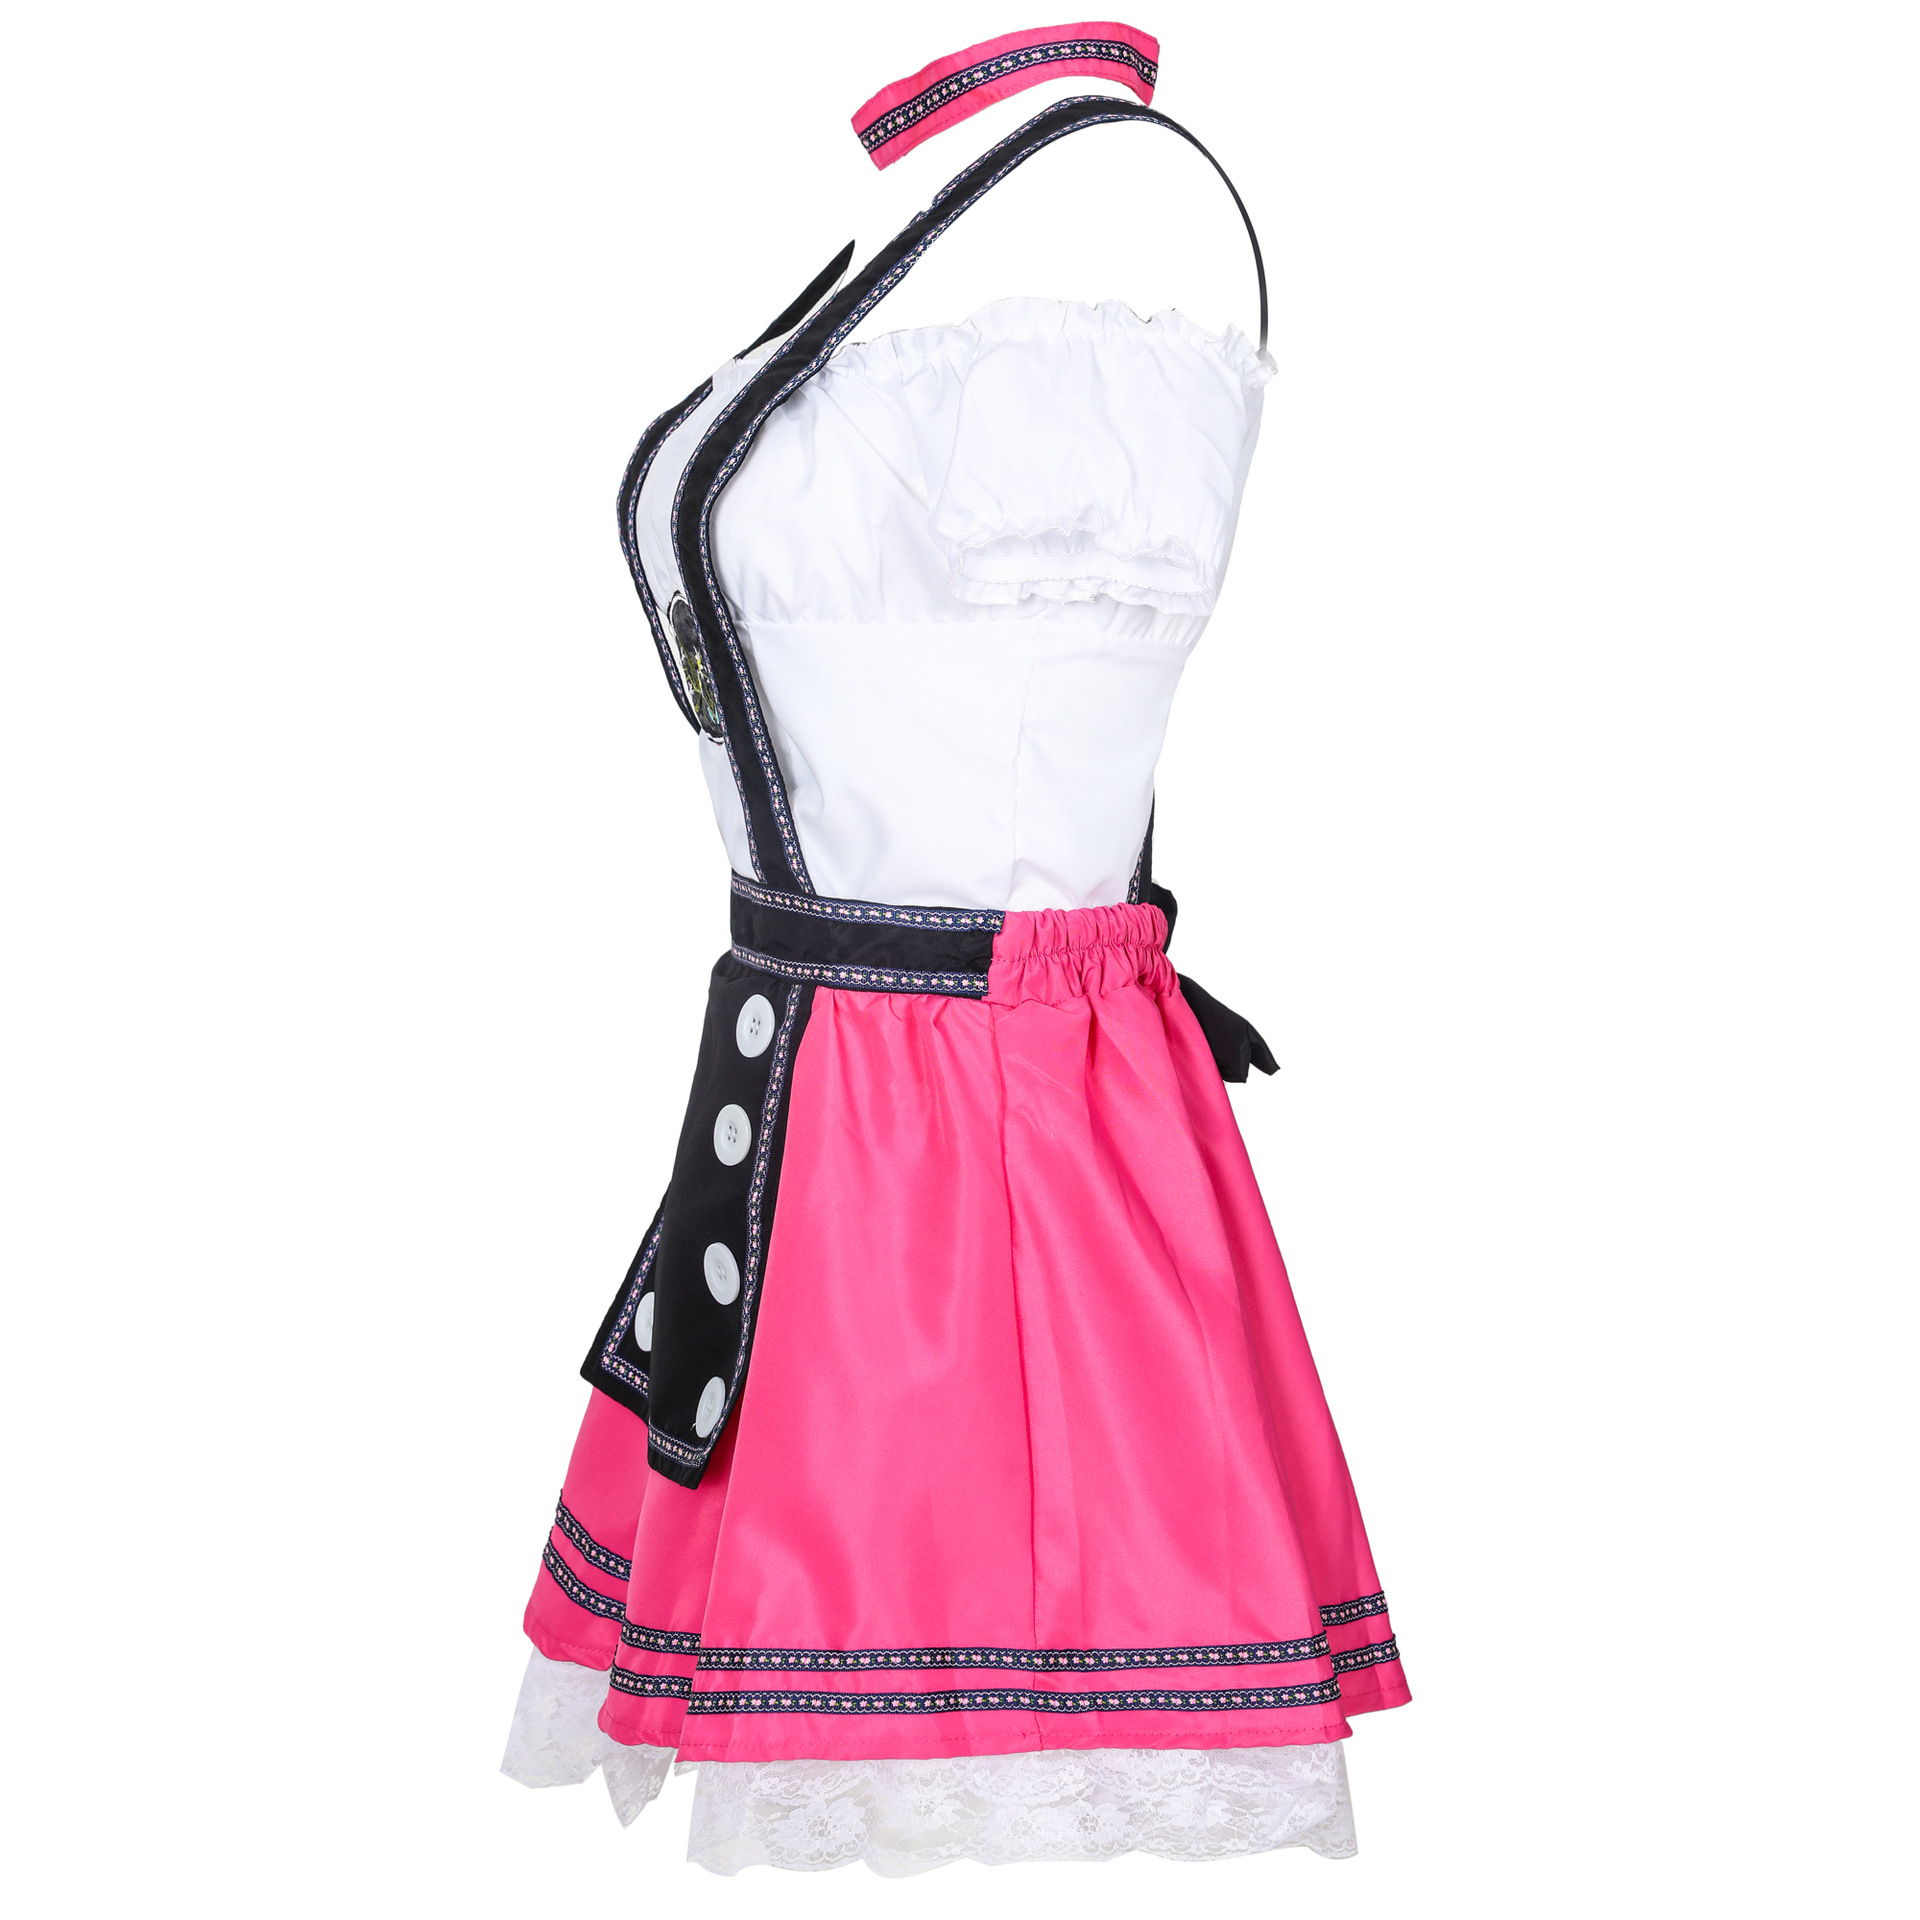 Beer Festival costume cos animation adult maid dress lovely Maid uniform Munich beer skirt